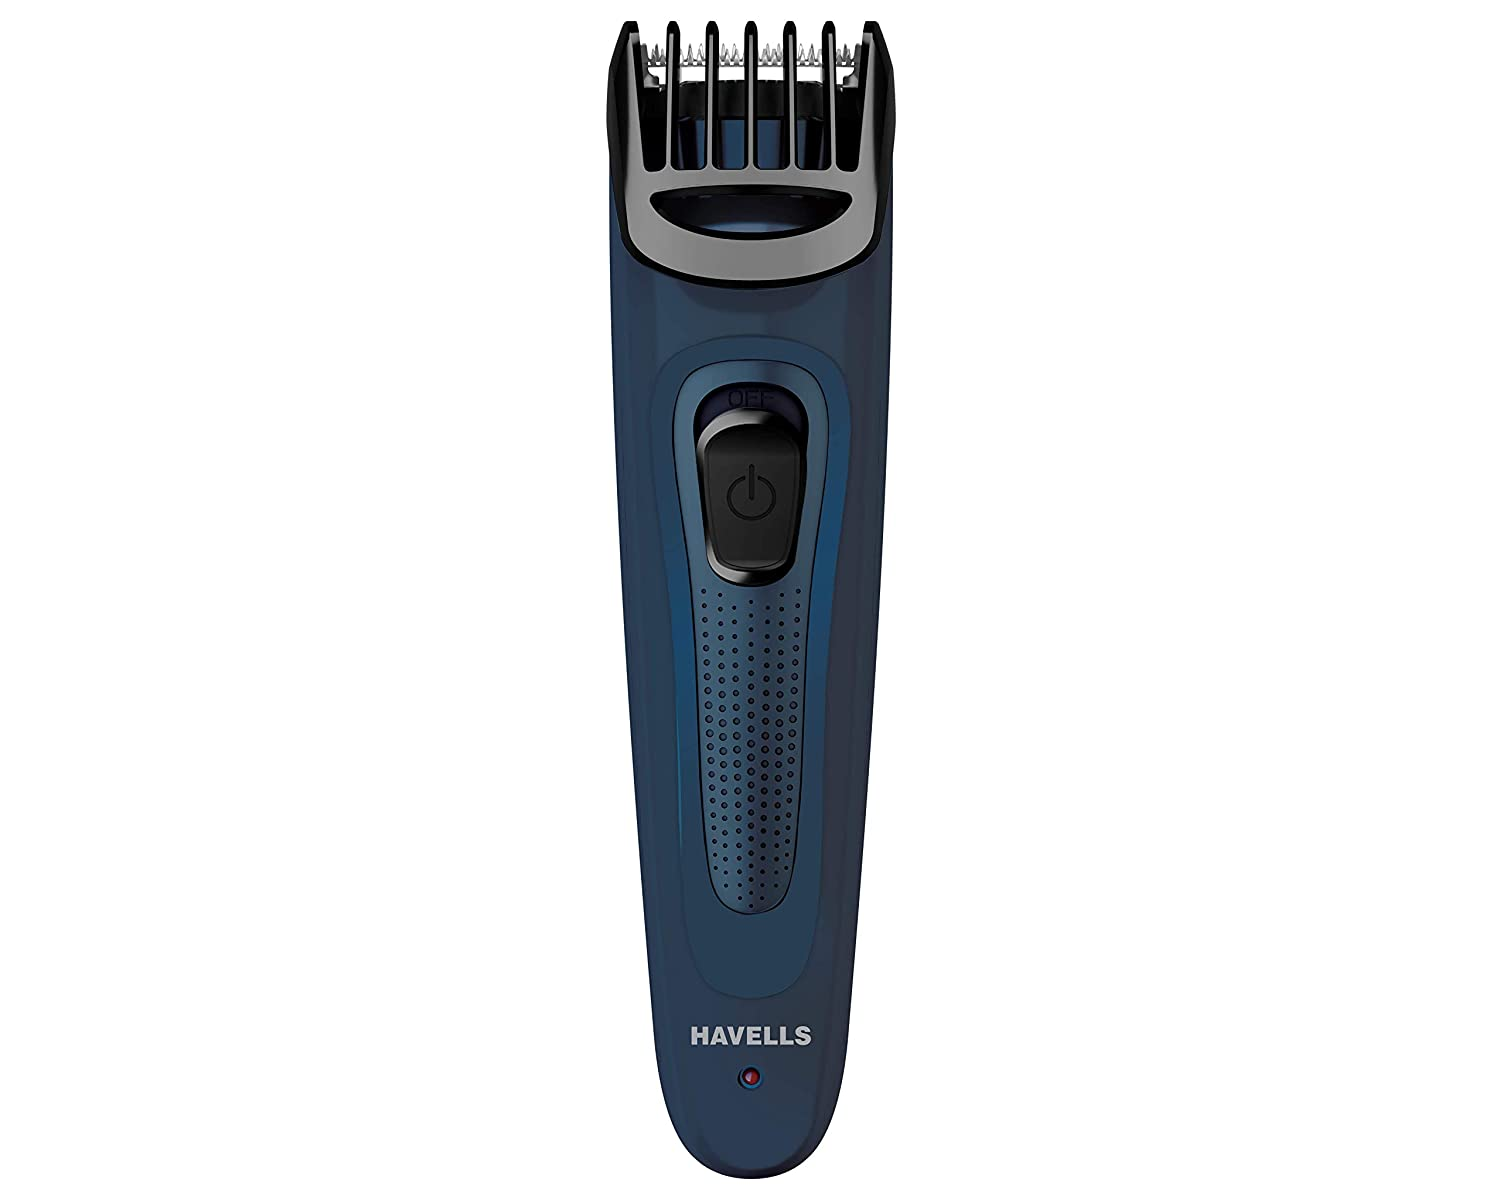 Havells BT5171C Fast Charge rechargeable Beard Trimmer with hypoallergenic stainless steel blades with length settings from 0.5 mm to 17 mm